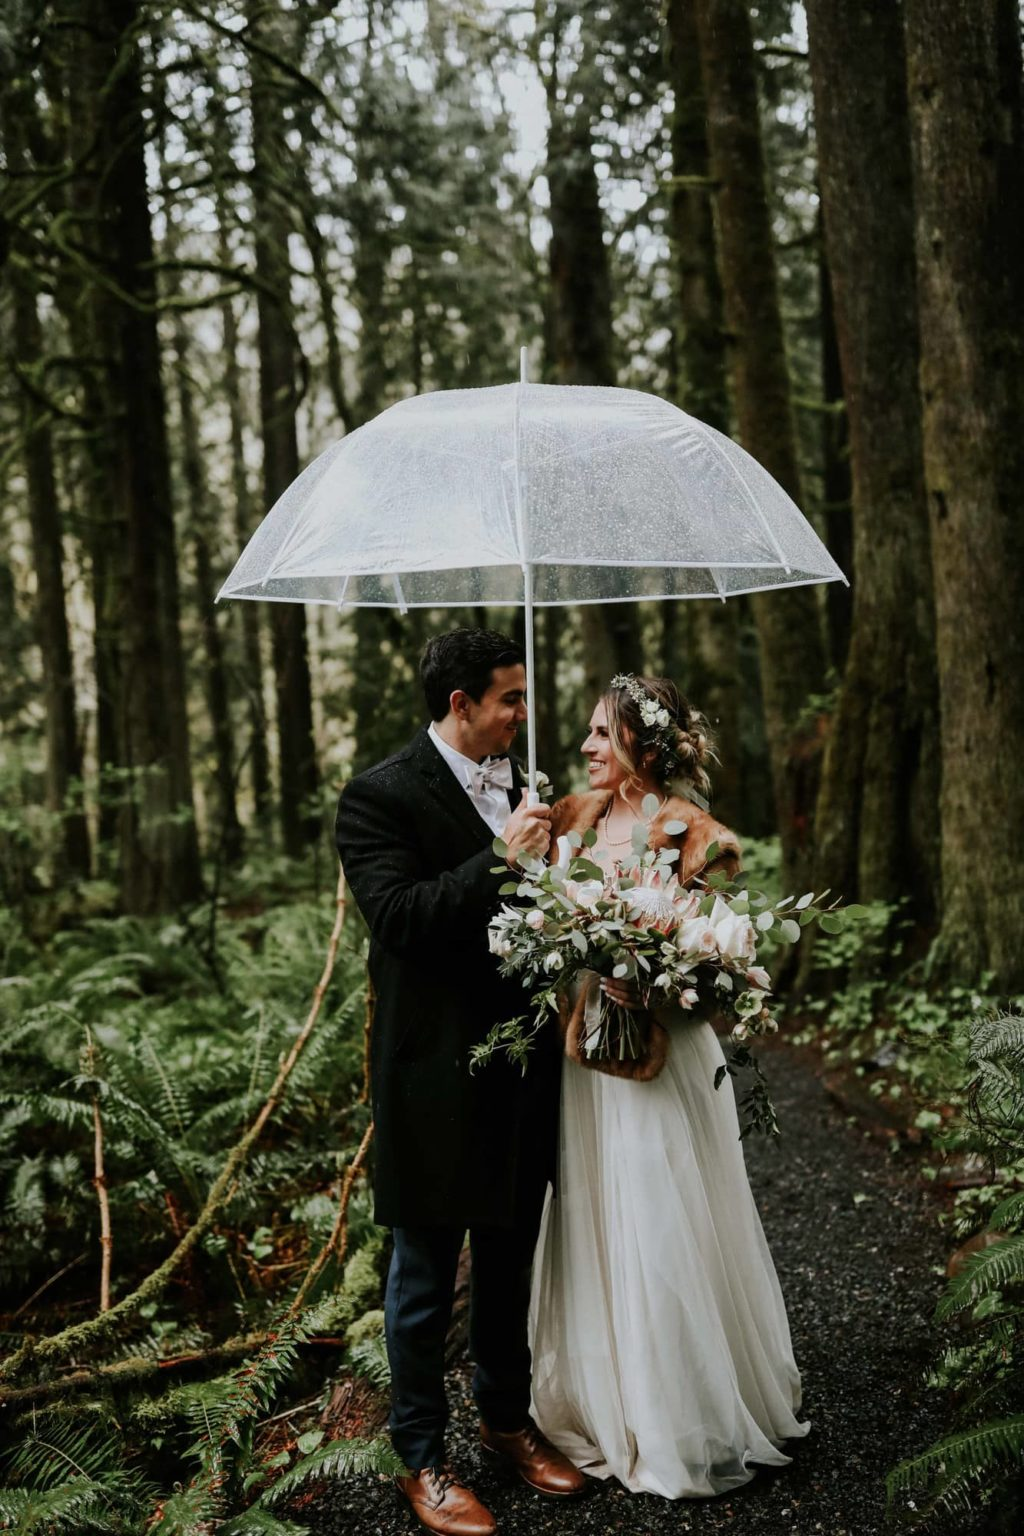 bride and groom looking at each other under an umbrella